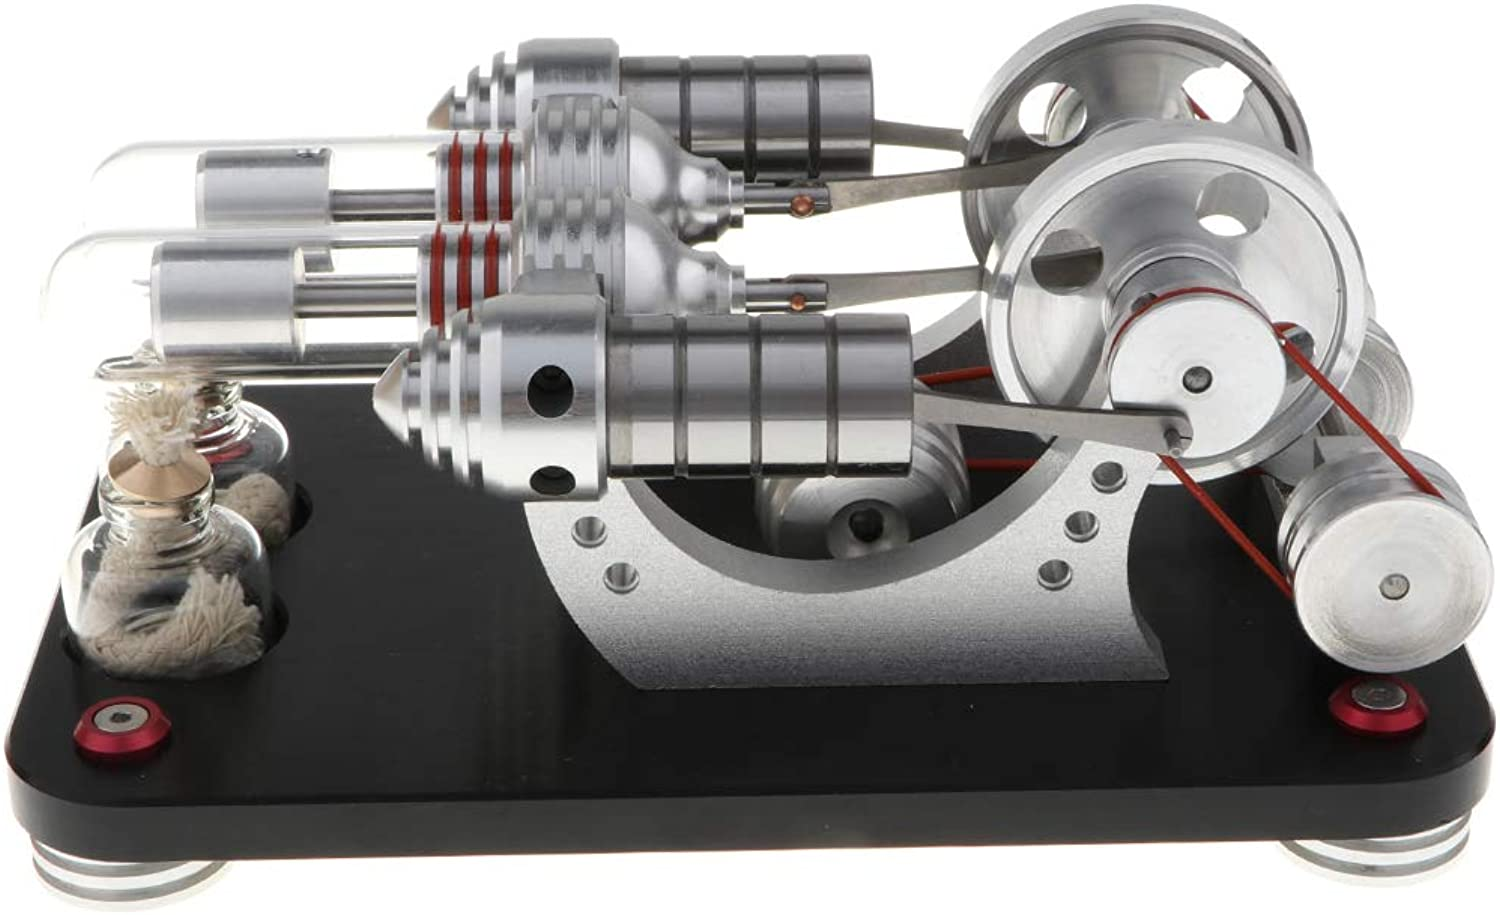 DYNWAVE Hot Air Stirling Engine Motor Powered by Hot Air, DoubleCylinder Mechanism, Education Toy, Collection Gifts Toy